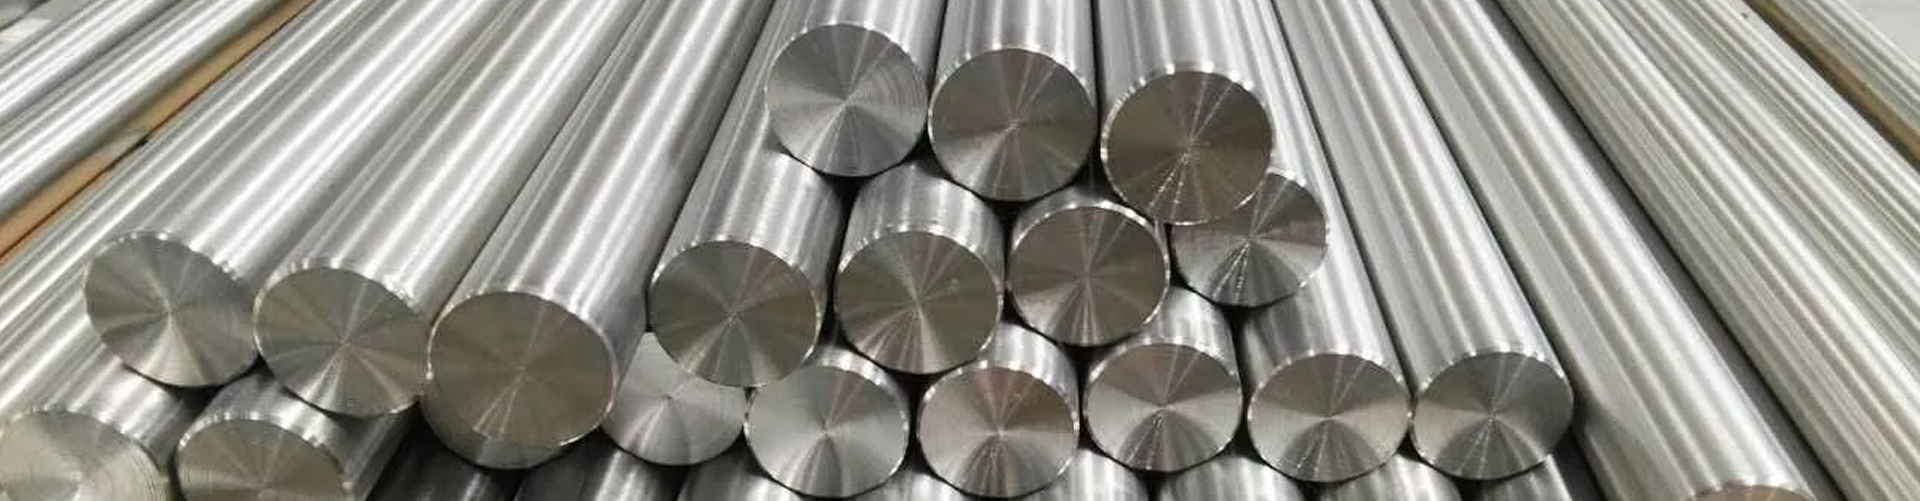 STAINLESS STEEL 316 ROUND